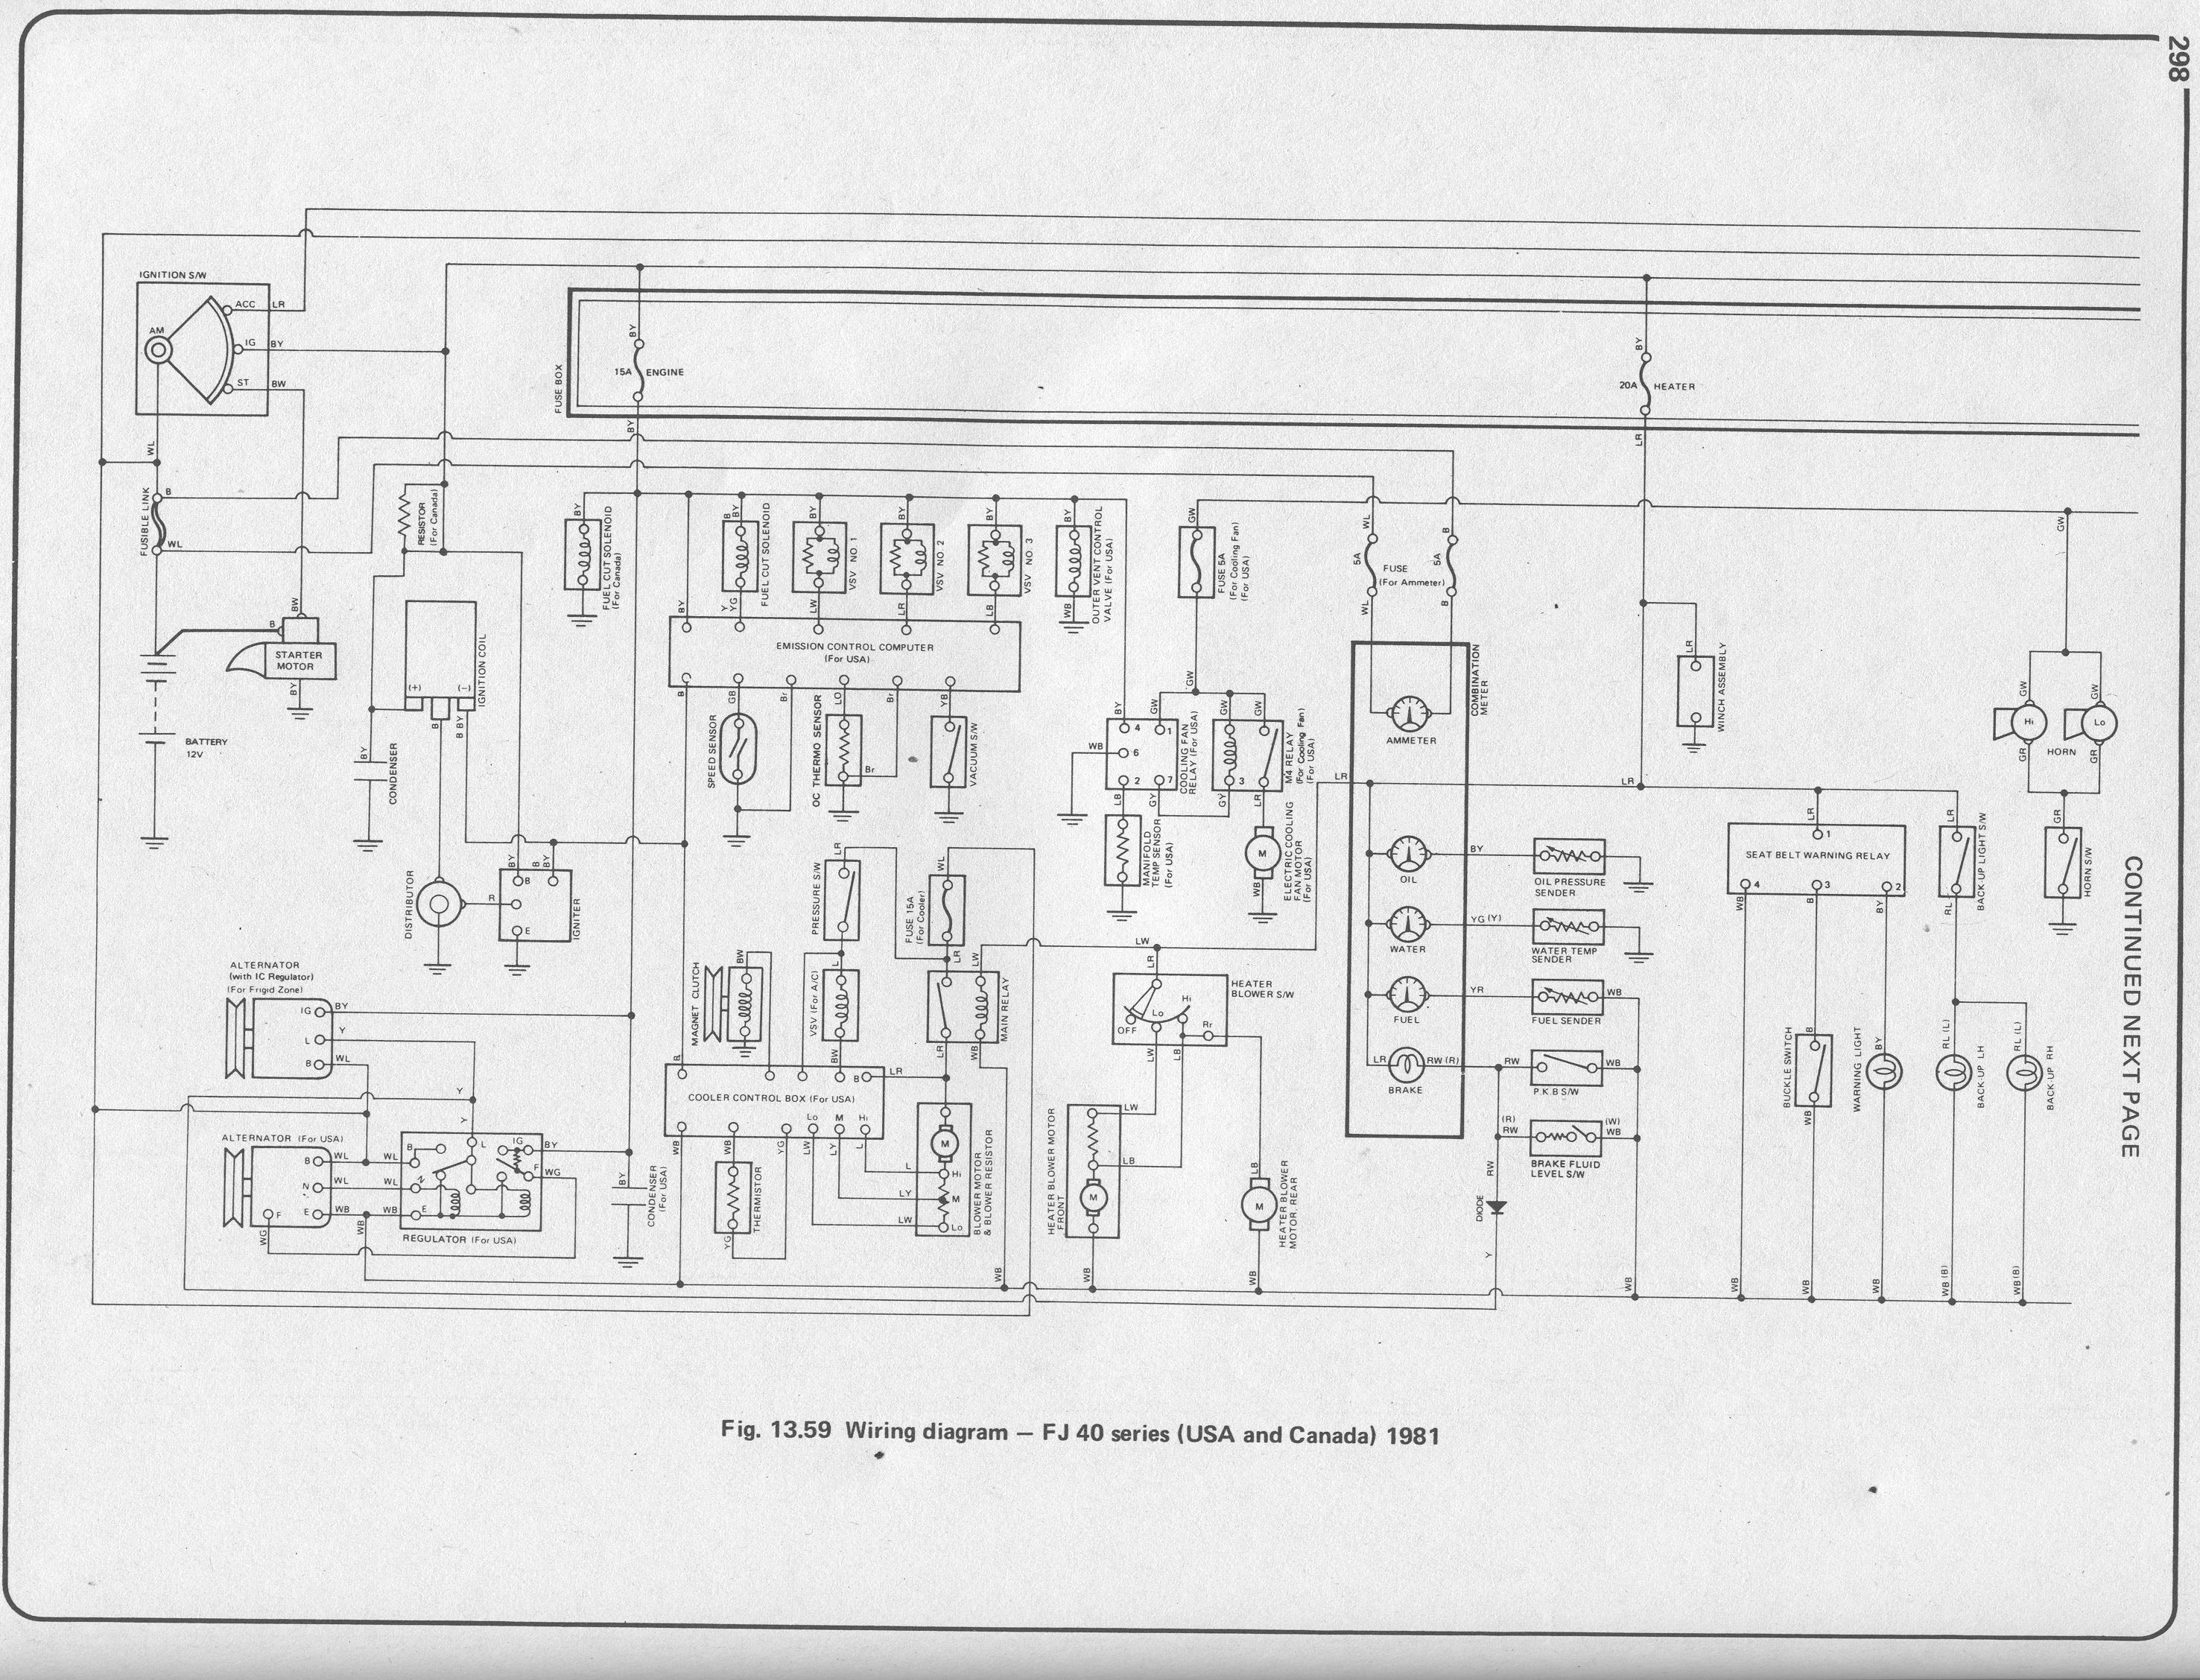 ... 87 88 89 90 Engine Wiring Schematic 114342 additionally Wfco Rv  Converter Wiring Diagram moreover Holiday ...